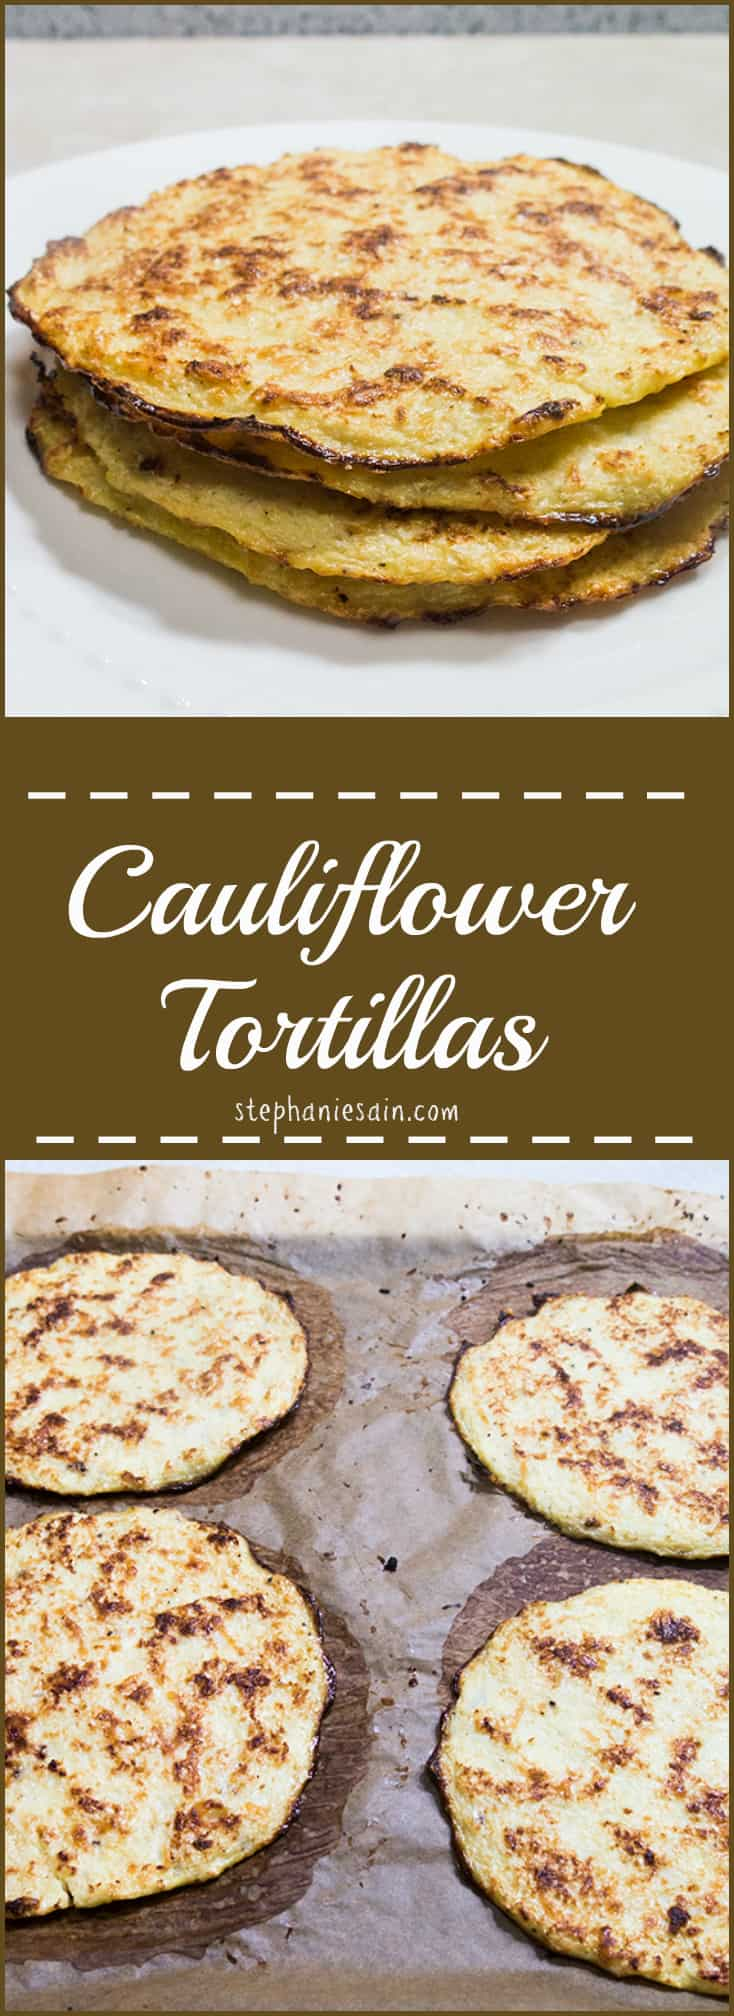 Cauliflower Tortillas are a tasty, healthy, lower carb option for tortillas. Less than 5 ingredients. Vegetarian and Gluten Free.